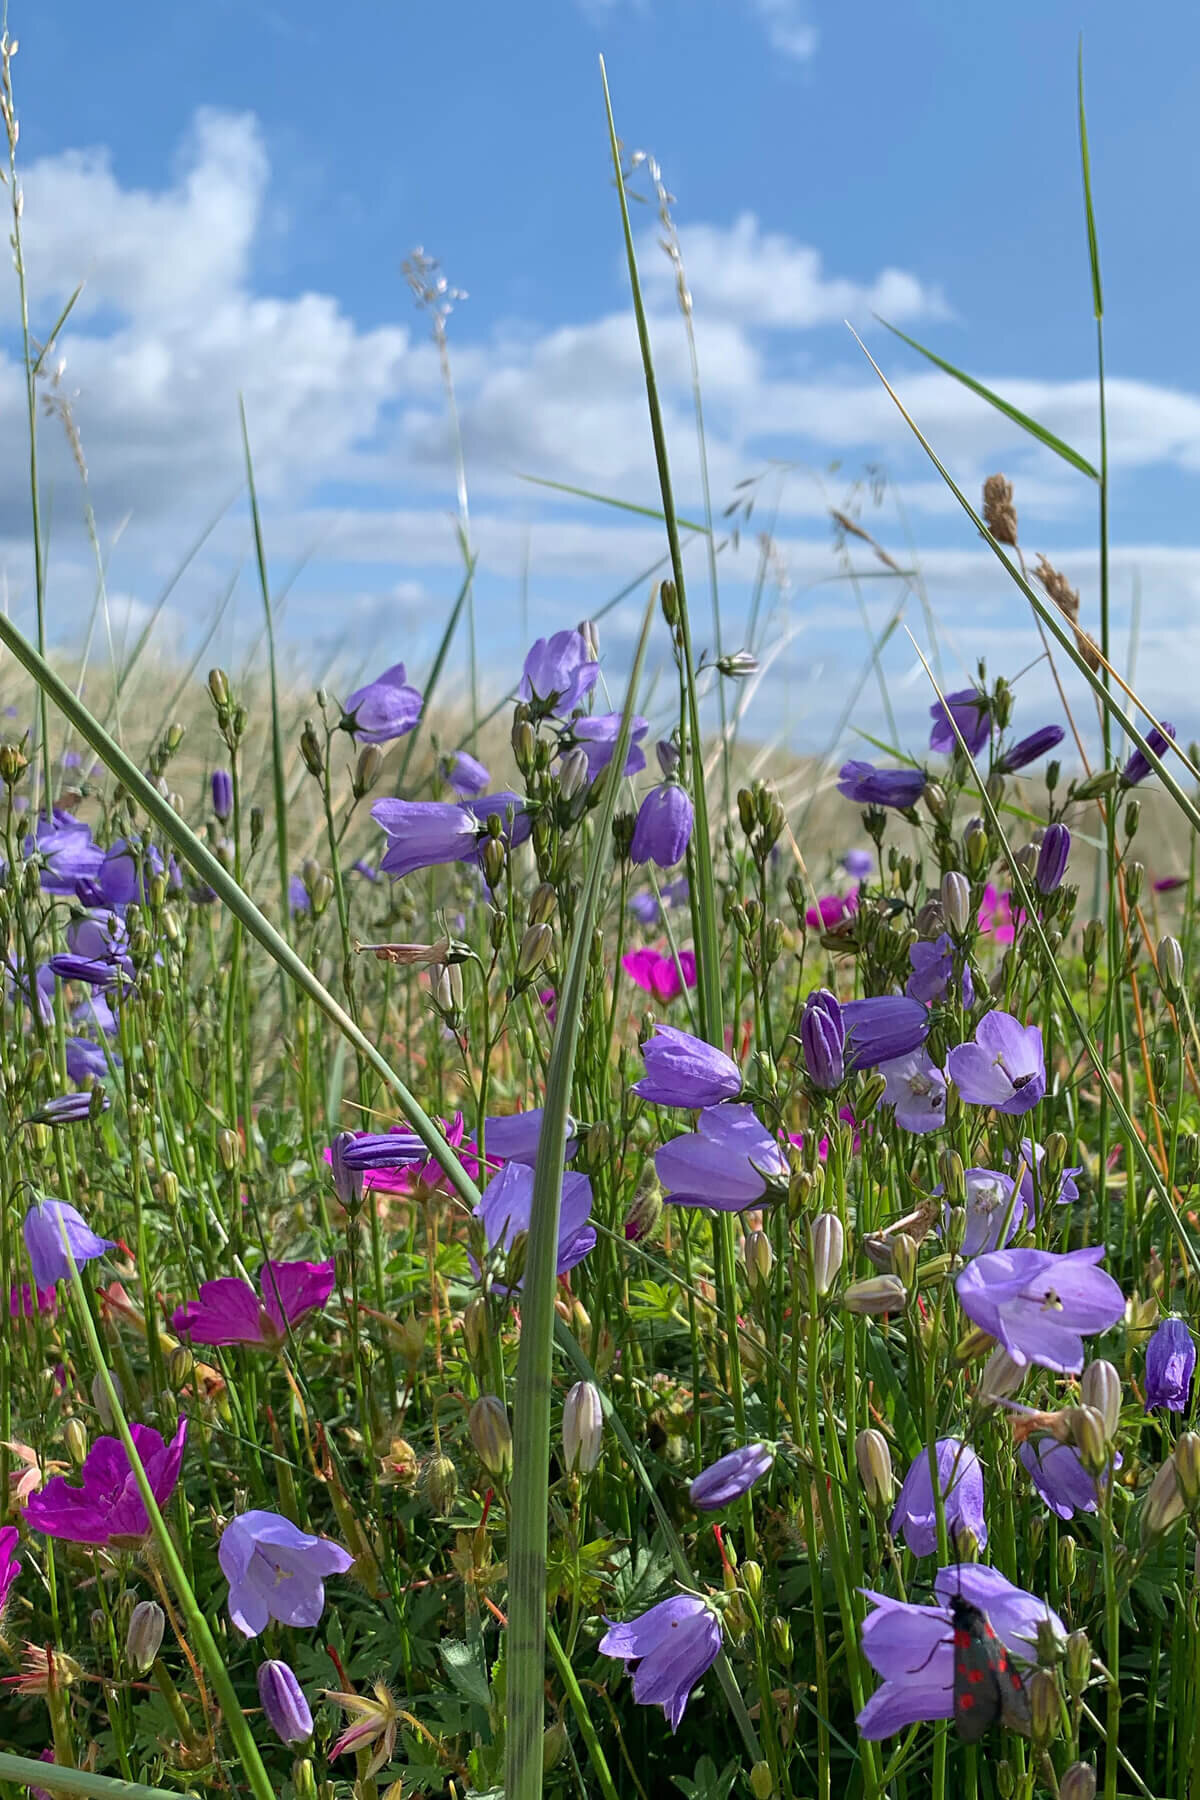 Harebells and Pink Cranesbill